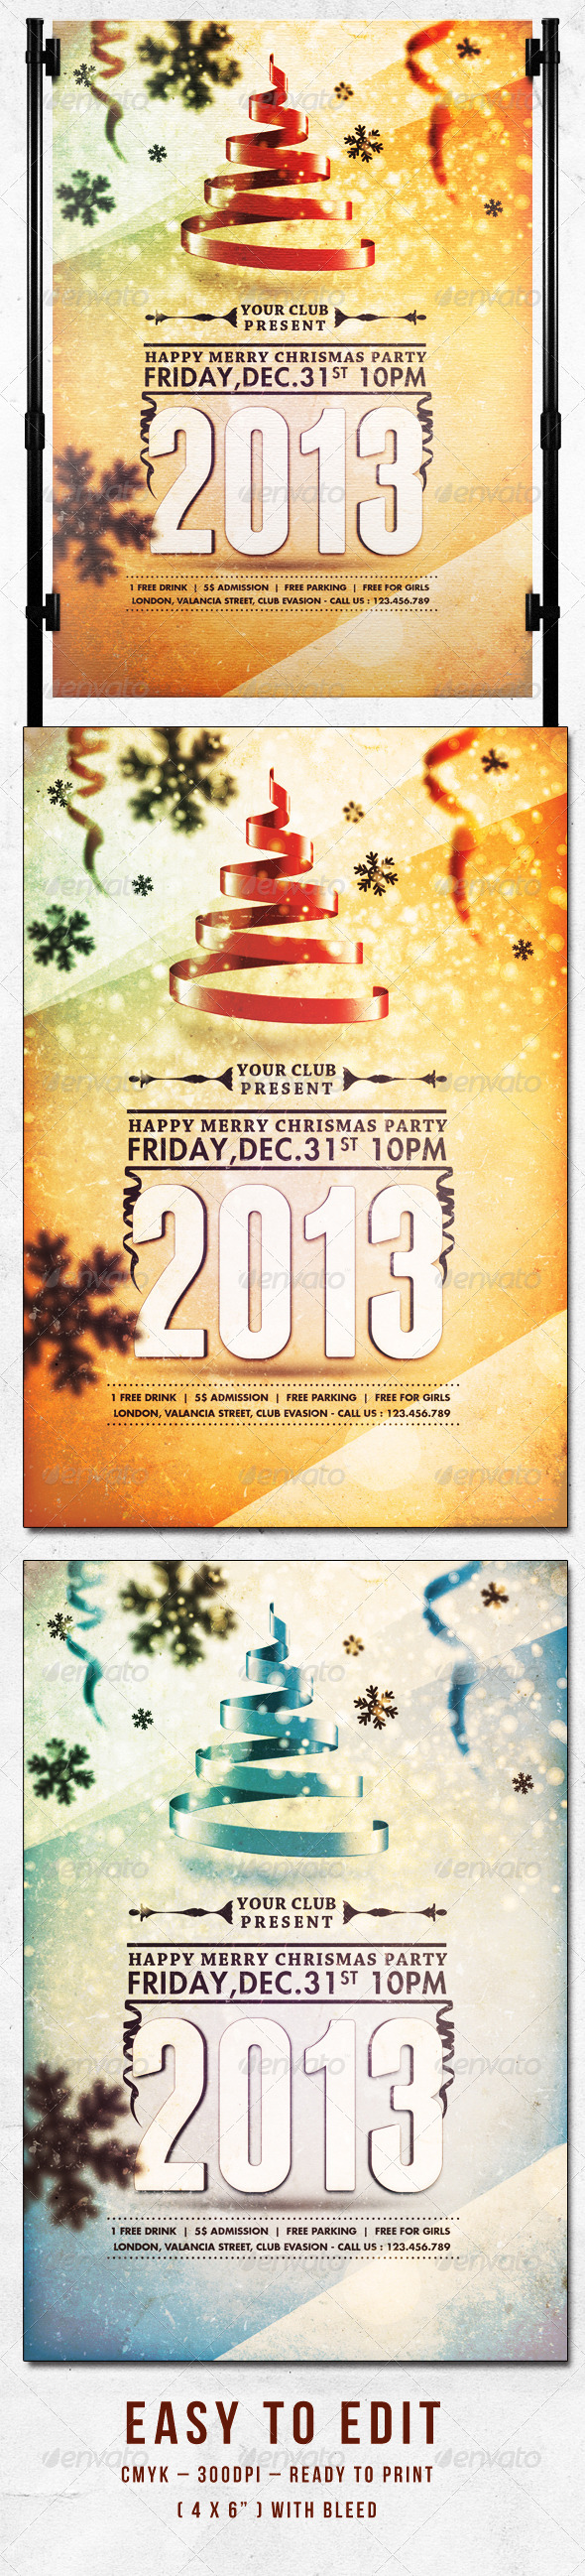 GraphicRiver Happy Merry Christmas Party Flyer Template 3317005